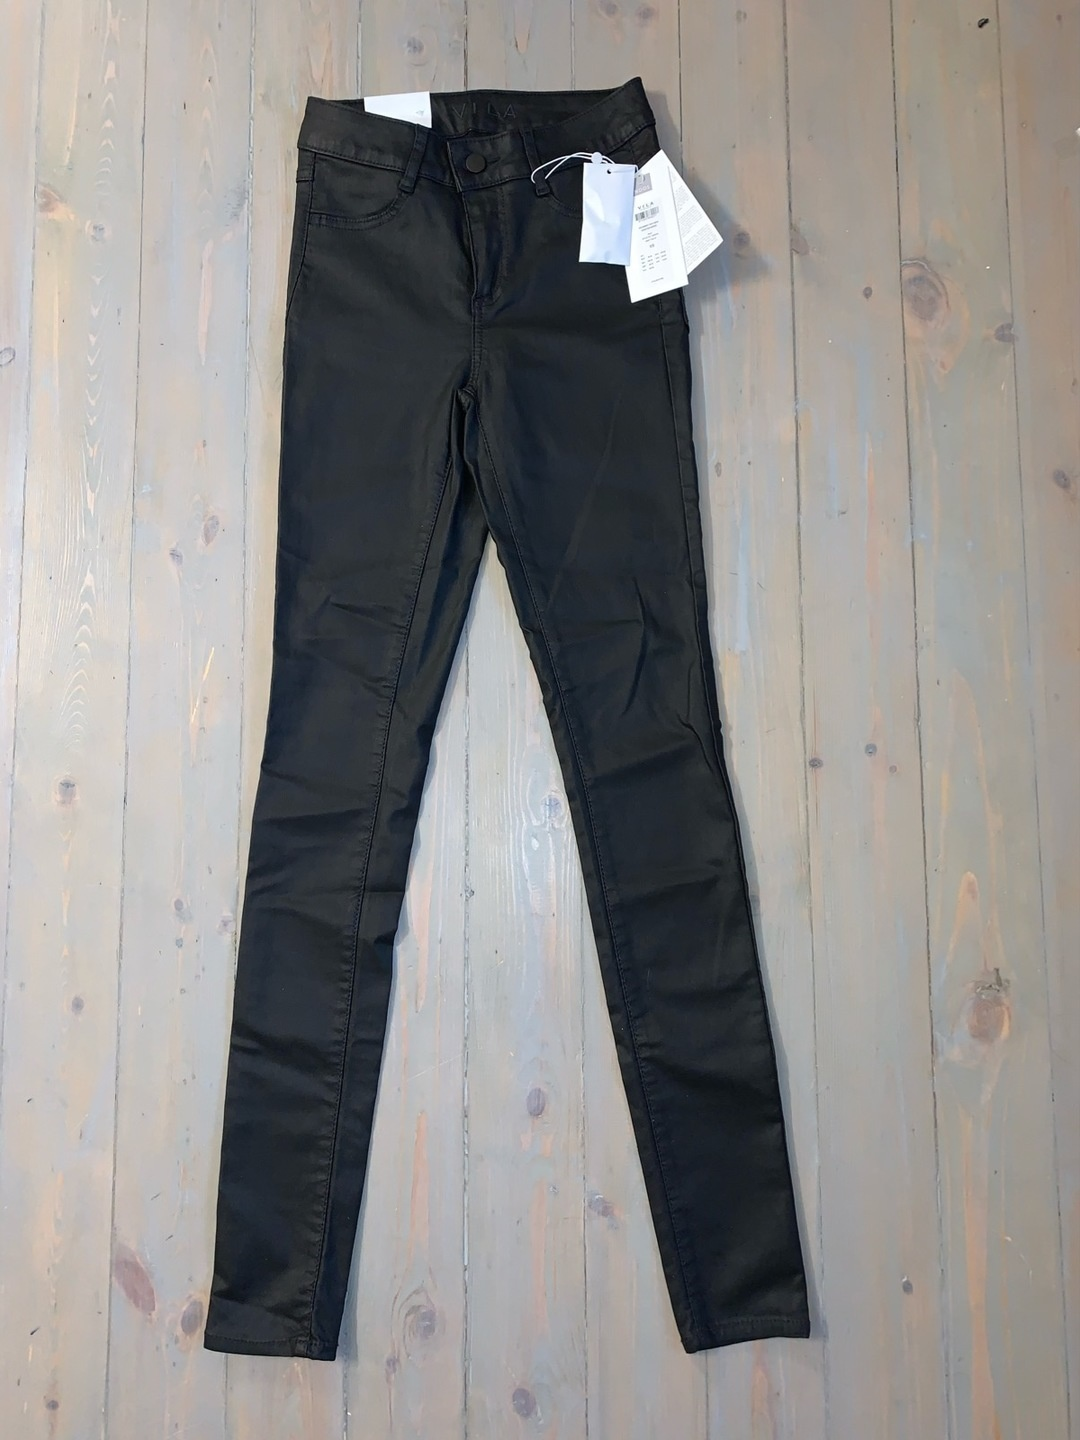 Women's trousers & jeans - VILA photo 1